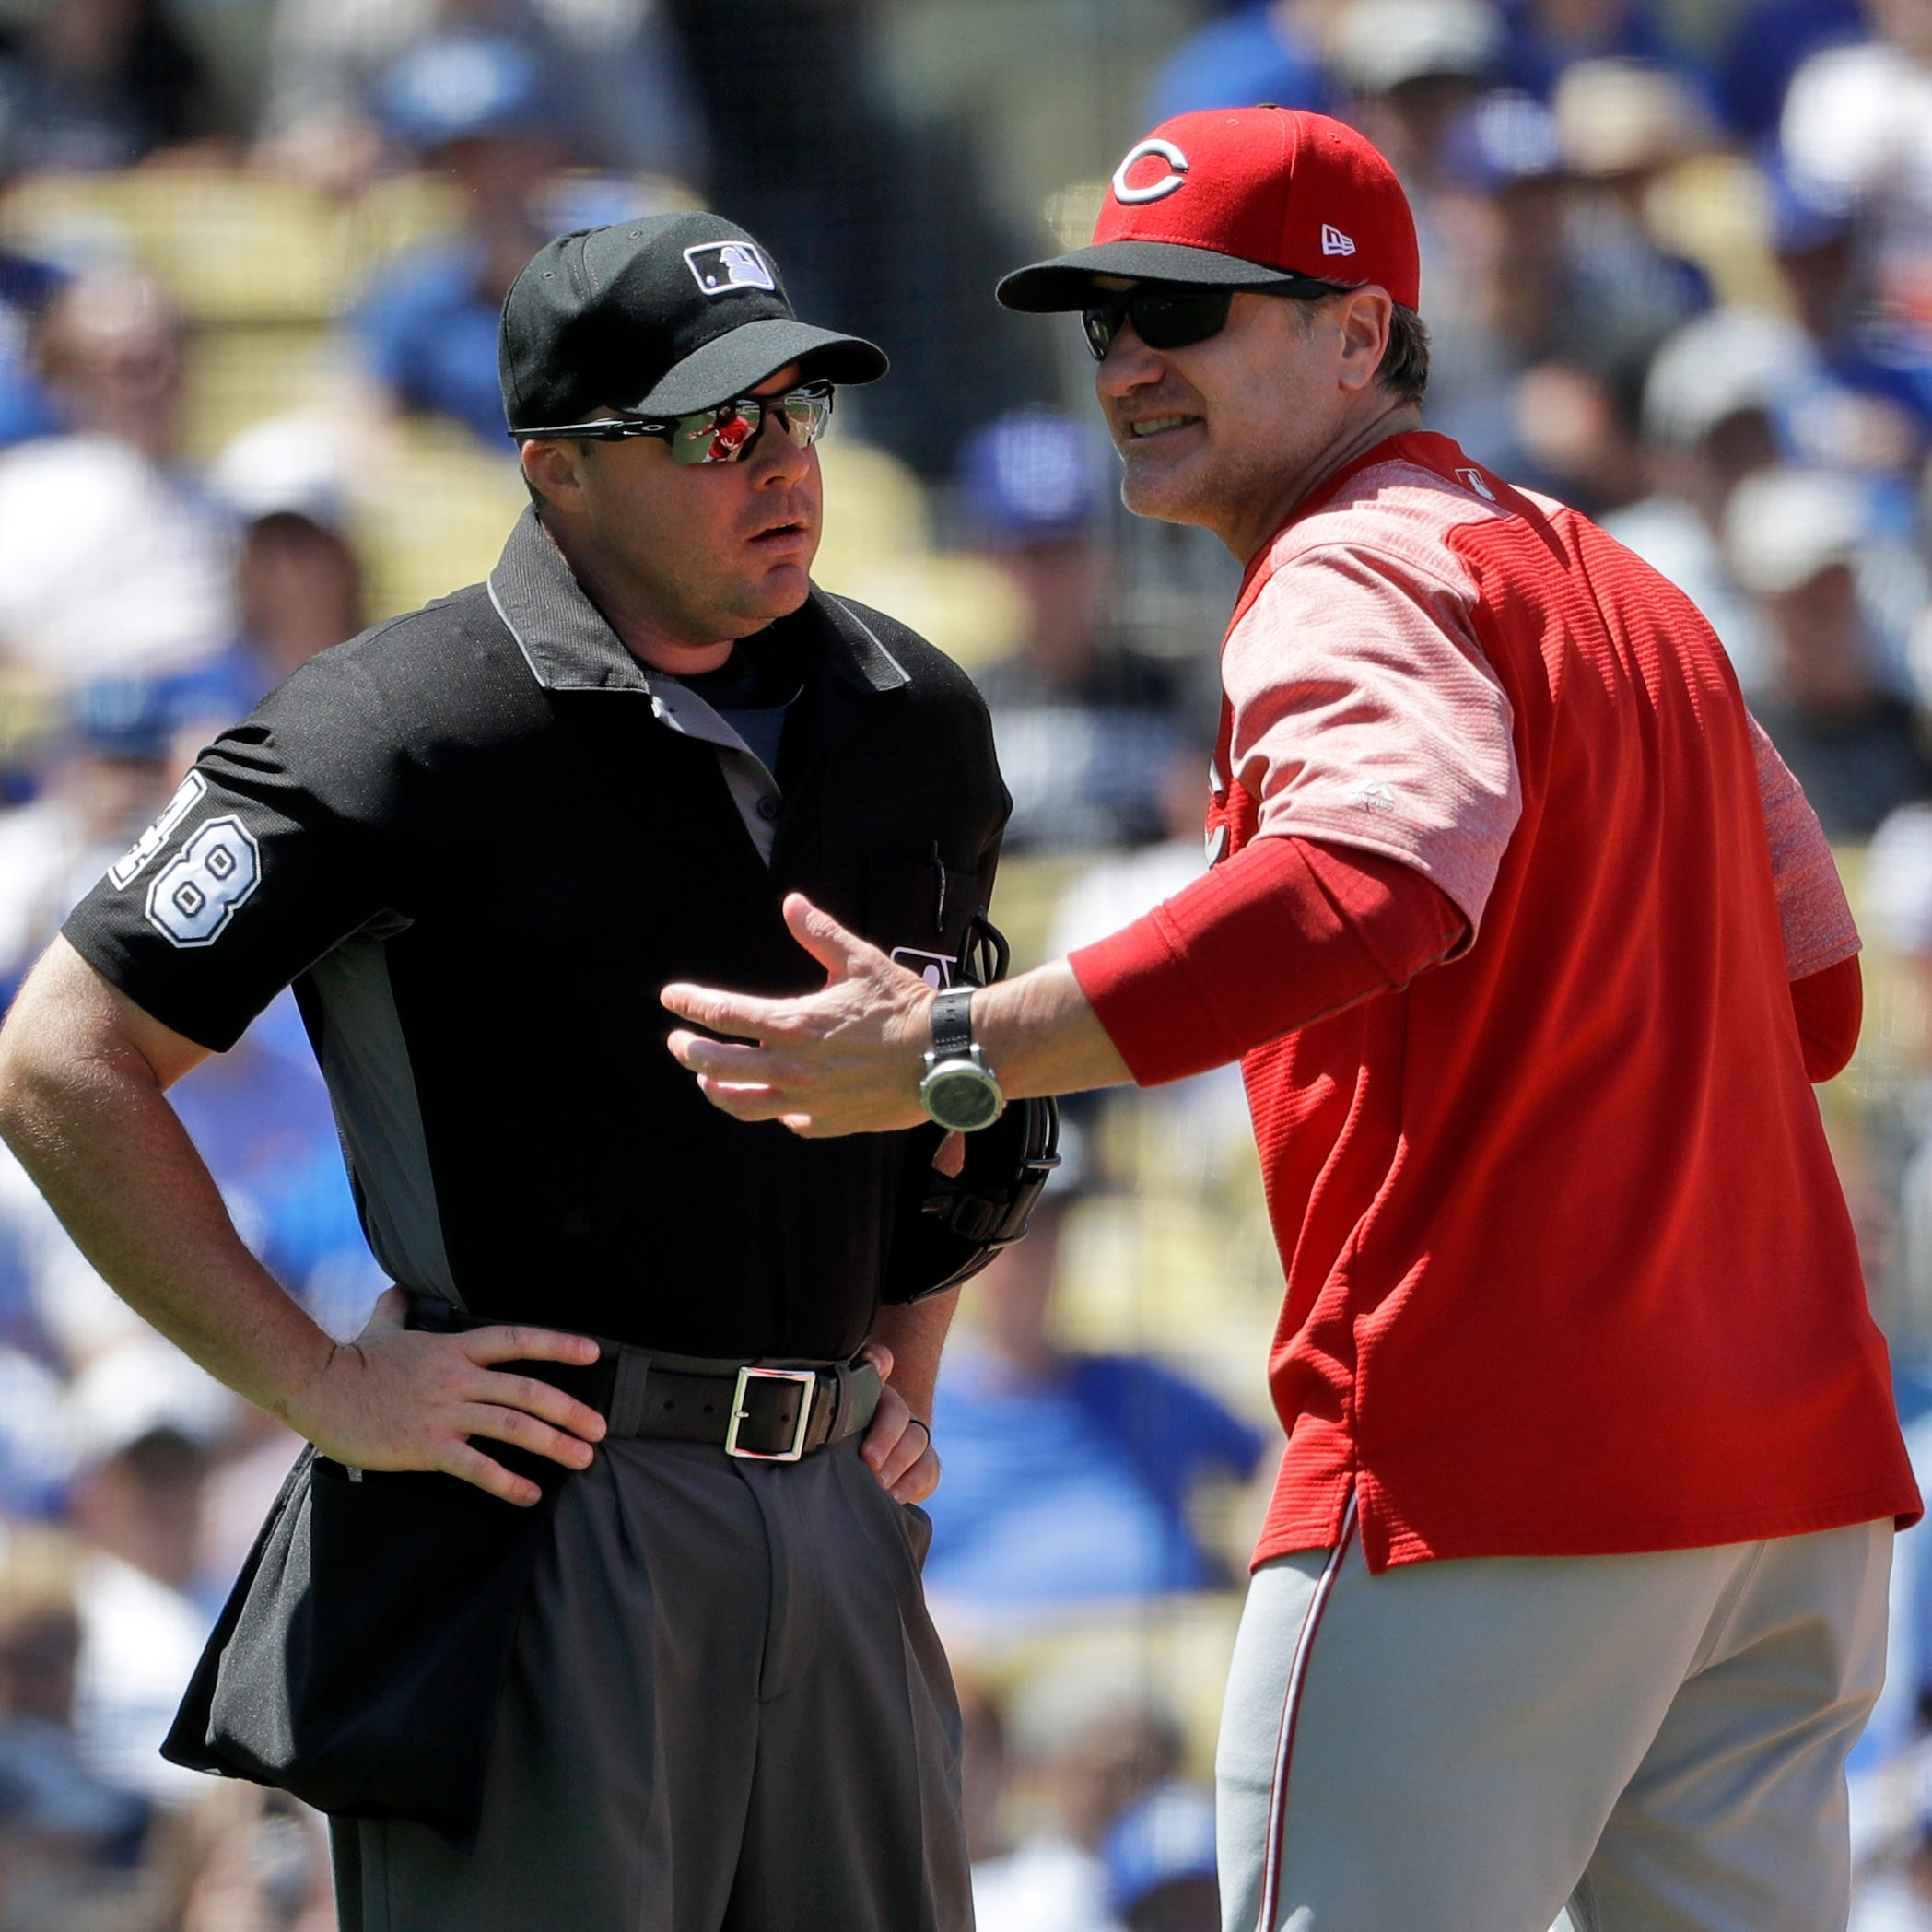 Manager David Bell ejected during the Cincinnati Reds' loss to Los Angeles Dodgers